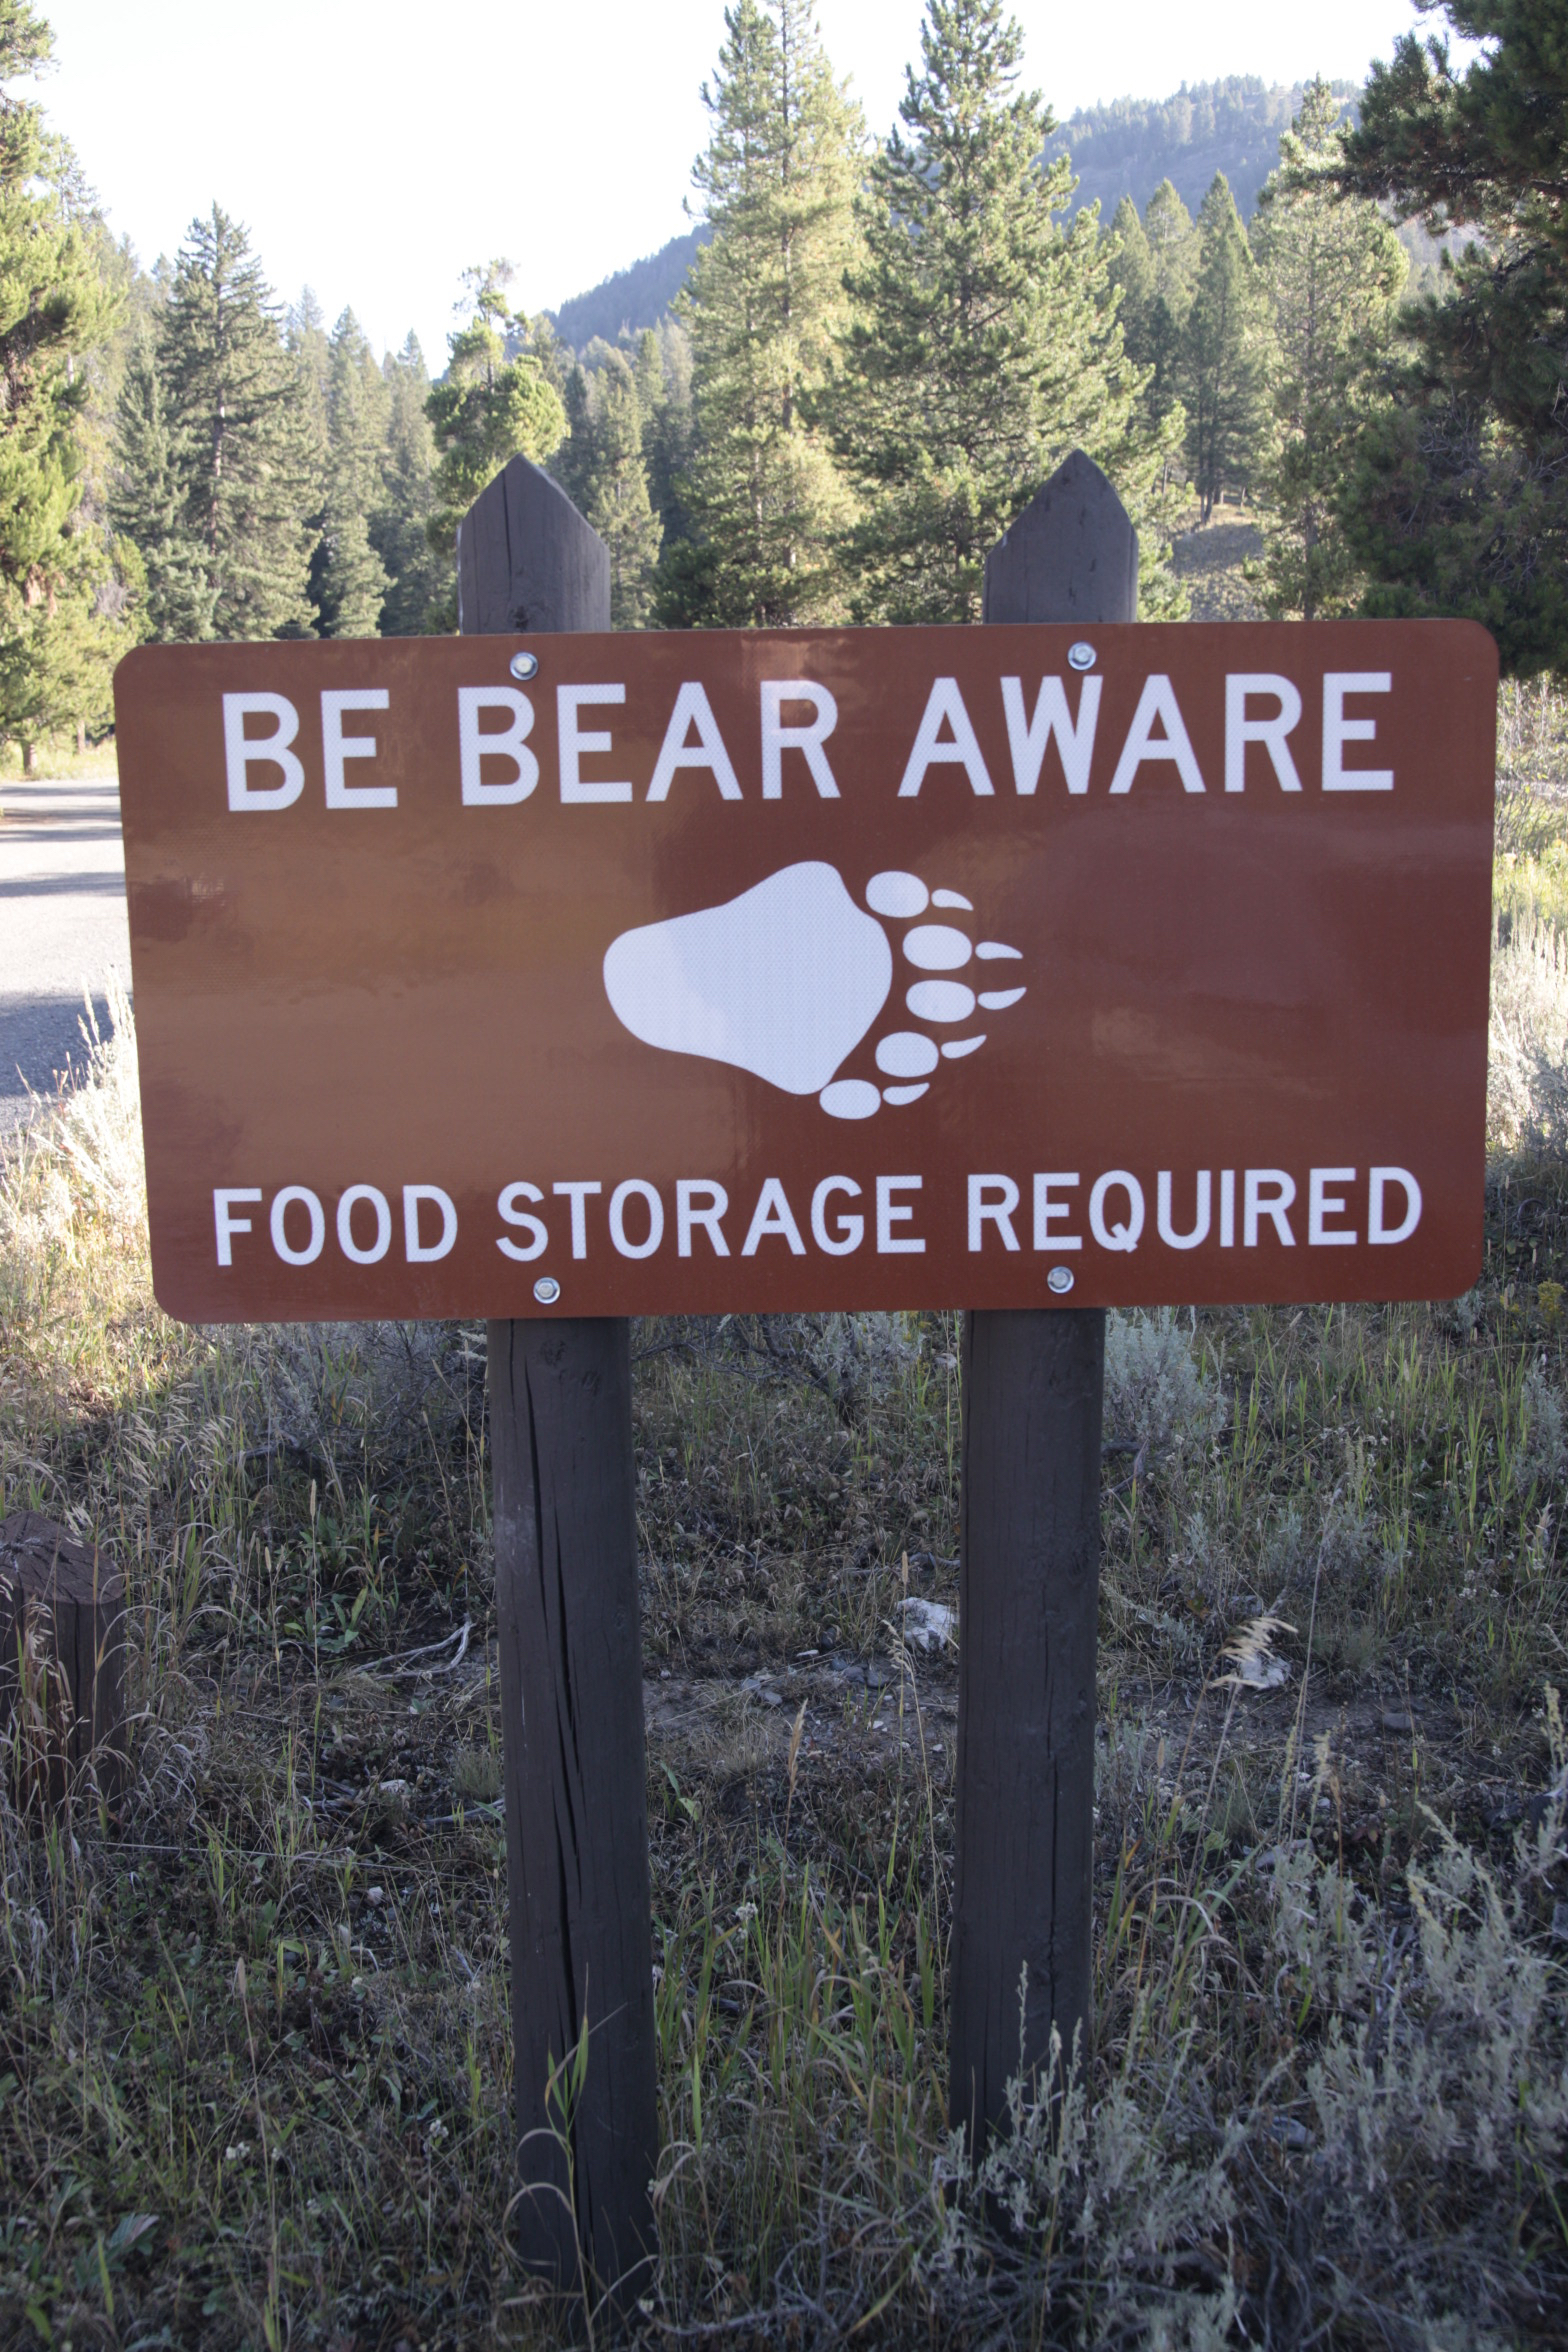 We can all be bear aware …